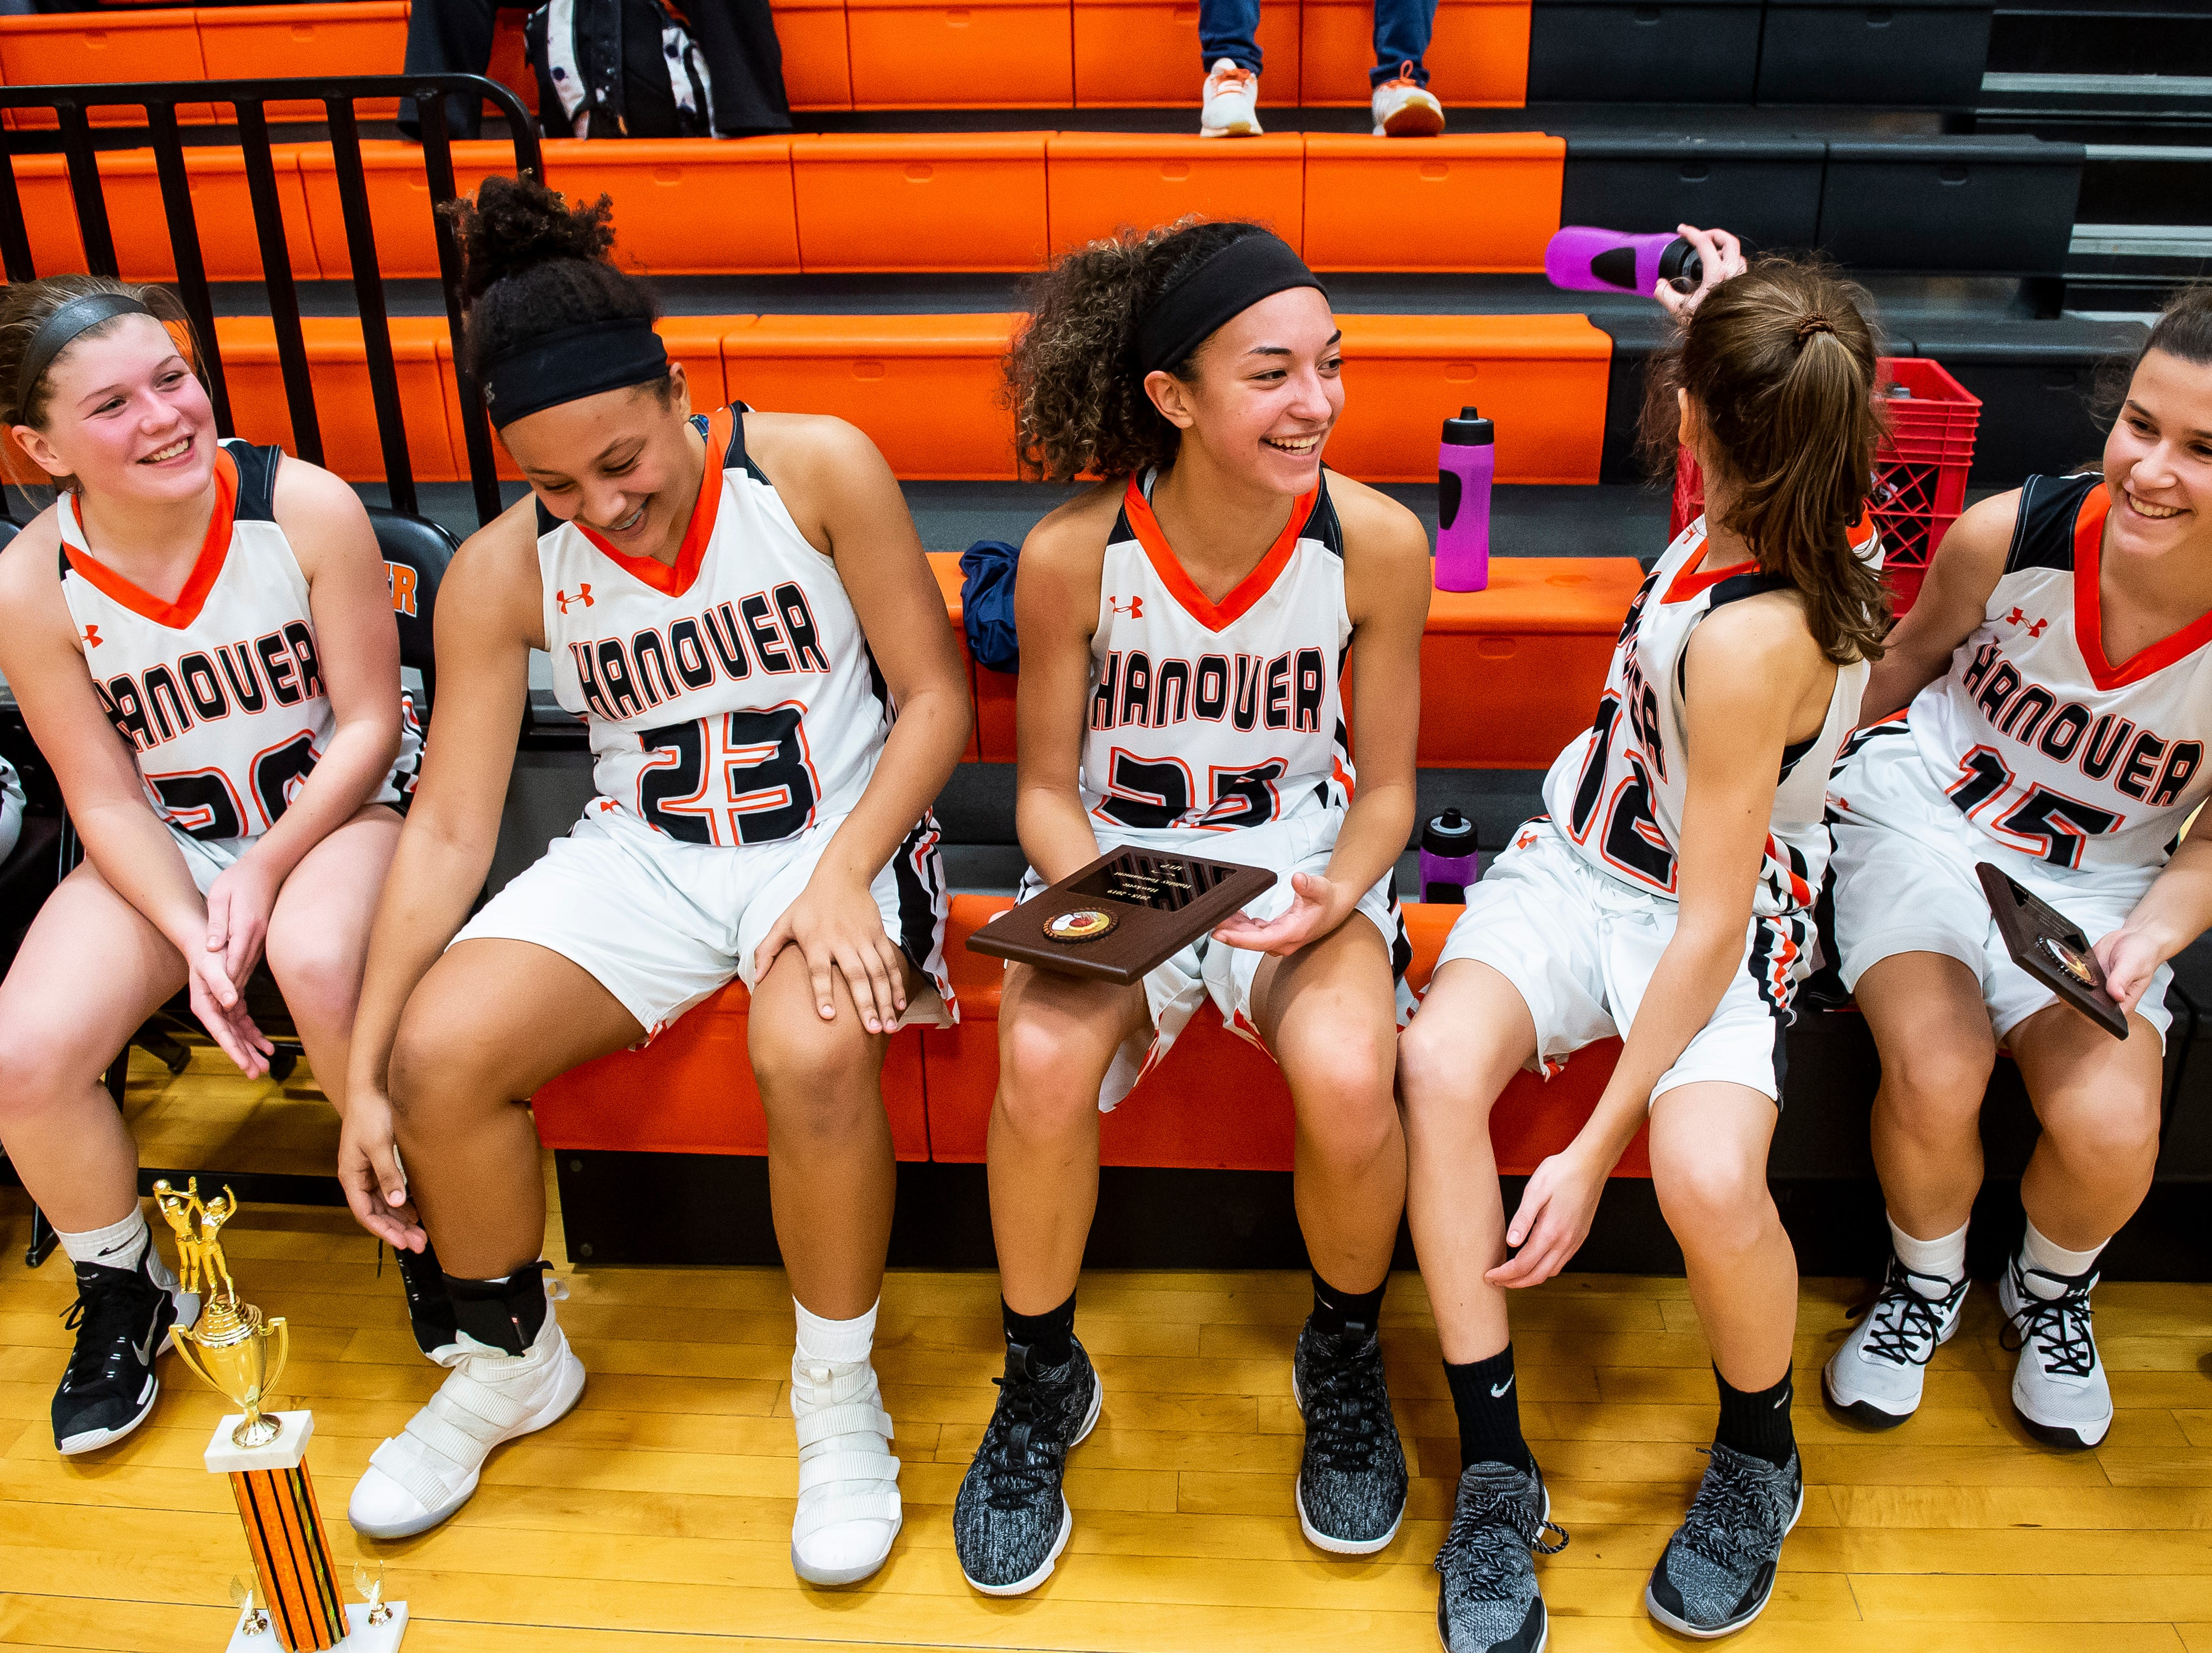 (From left) Hanover's five starters; Saige Stevens, Mattie Heath, Tianna Gray, Jaycie Miller and Madelyn Hutton following the Hawkettes win against Biglerville in the championship game of the Hanover Holiday Classic on Friday, December 28, 2018. Hanover won 30-20.